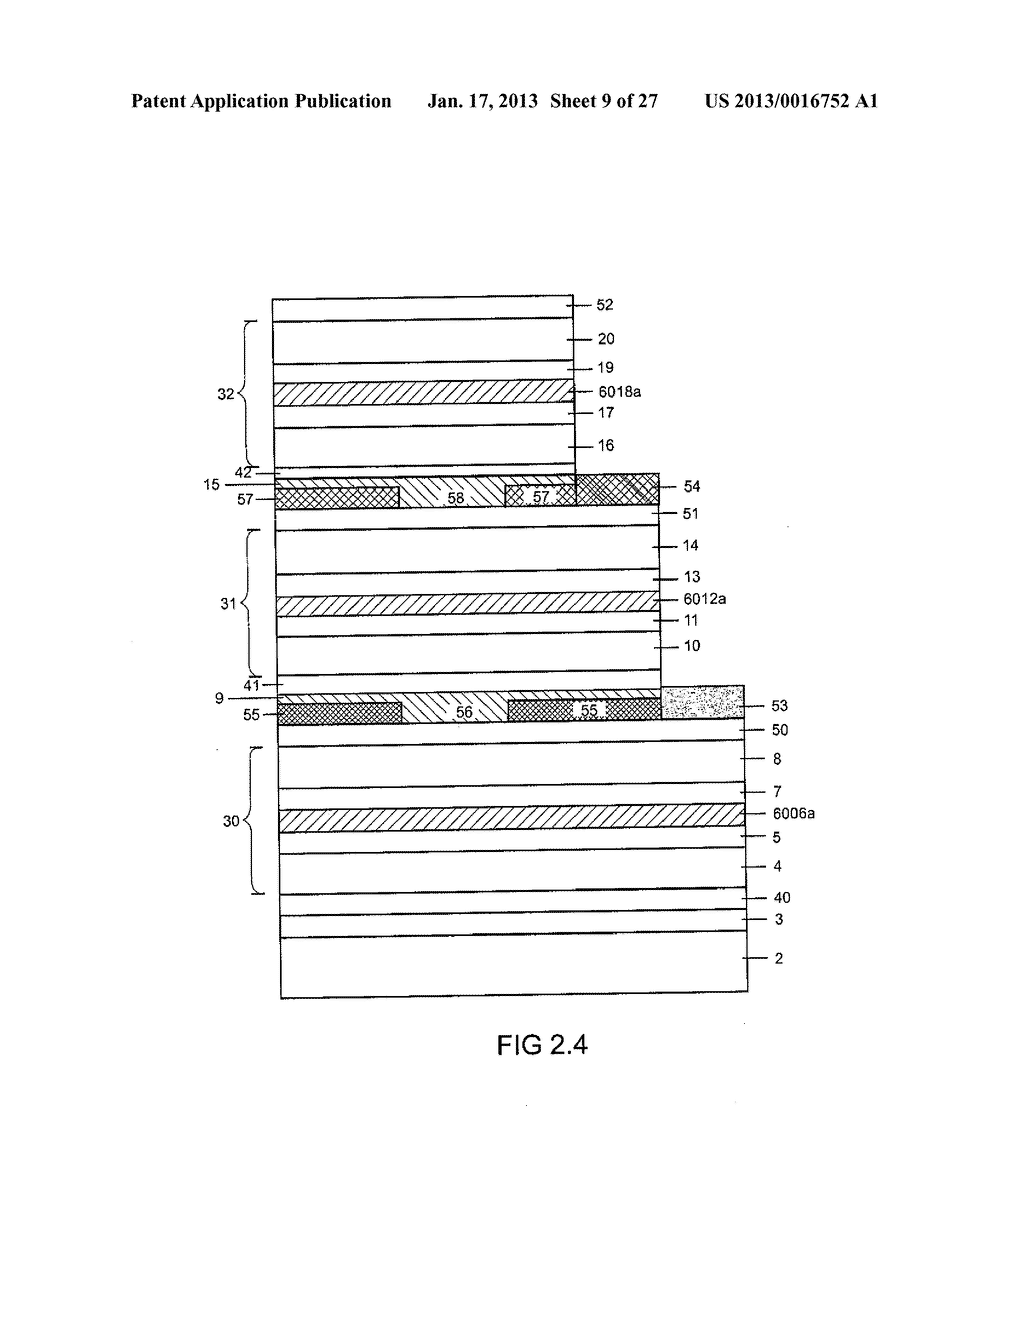 Laser Diode Assembly and Method for Producing a Laser Diode AssemblyAANM Lell; AlfredAACI Maxhutte-HaidhofAACO DEAAGP Lell; Alfred Maxhutte-Haidhof DEAANM Straussburg; MartinAACI DonaustaufAACO DEAAGP Straussburg; Martin Donaustauf DE - diagram, schematic, and image 10